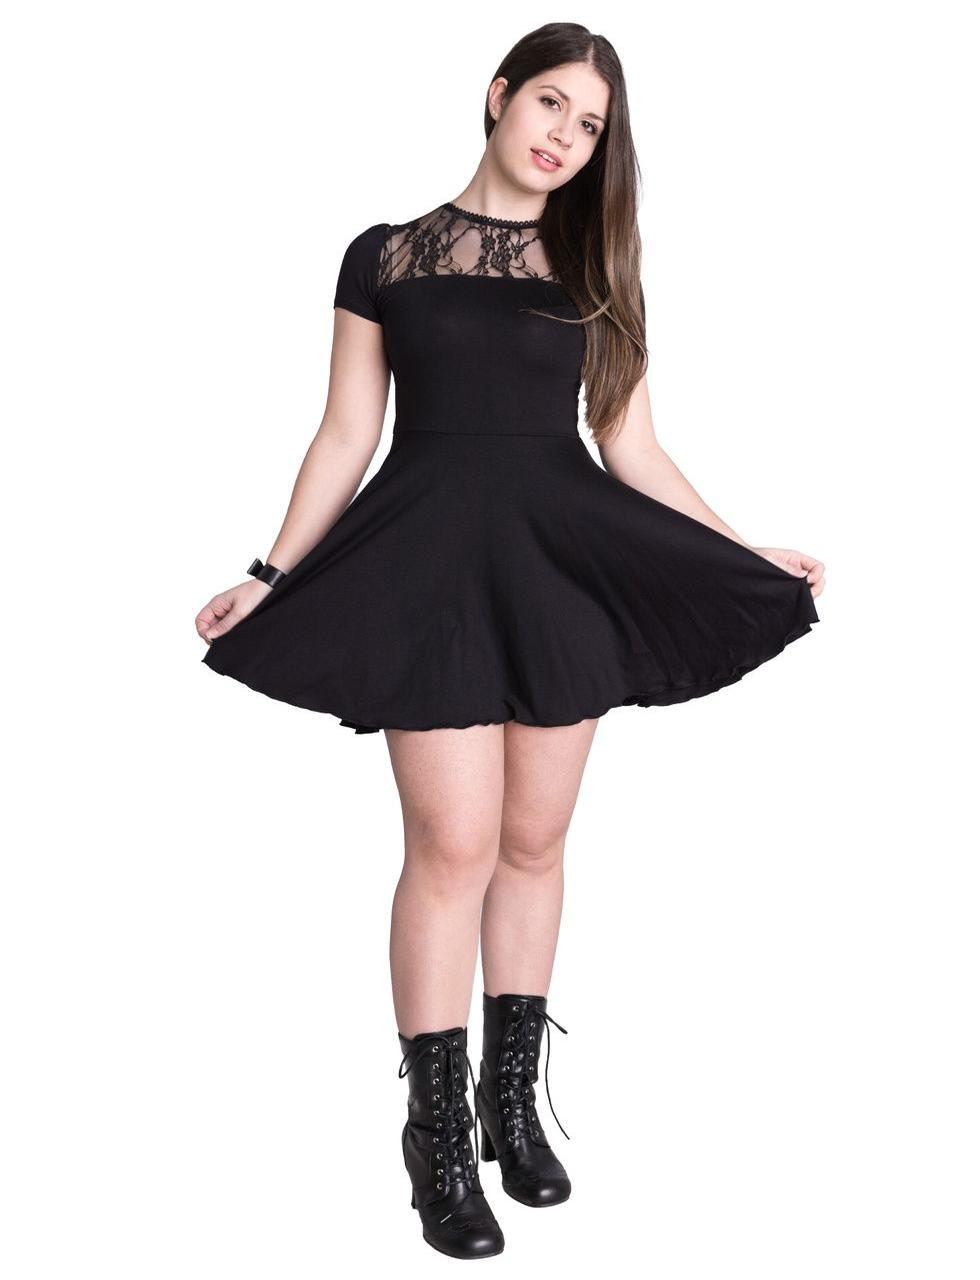 Sweet Darkness Dress